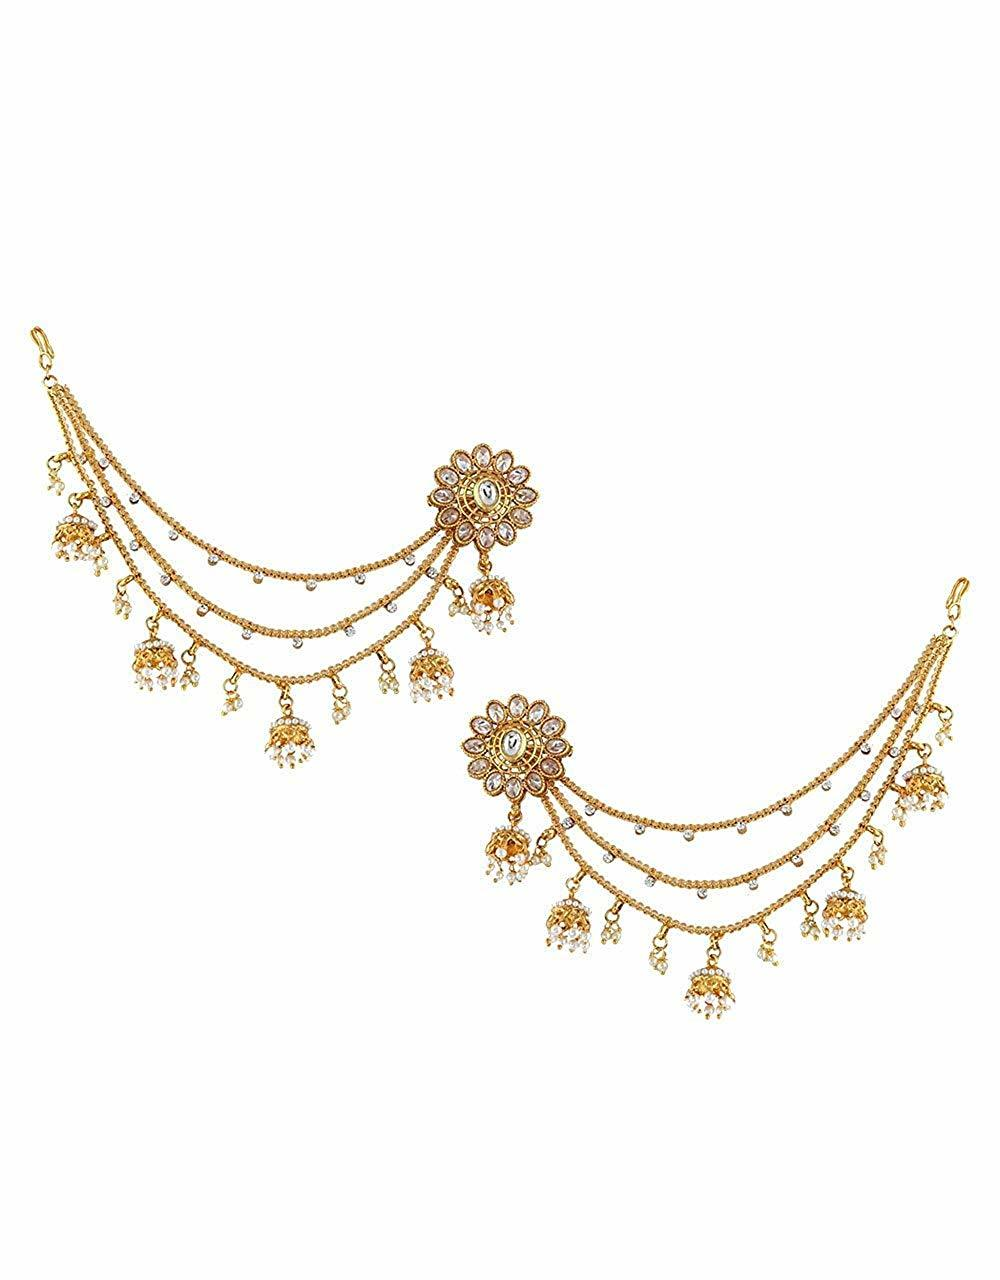 Floral Design Gold Finish Ear Tops With Ear Chain